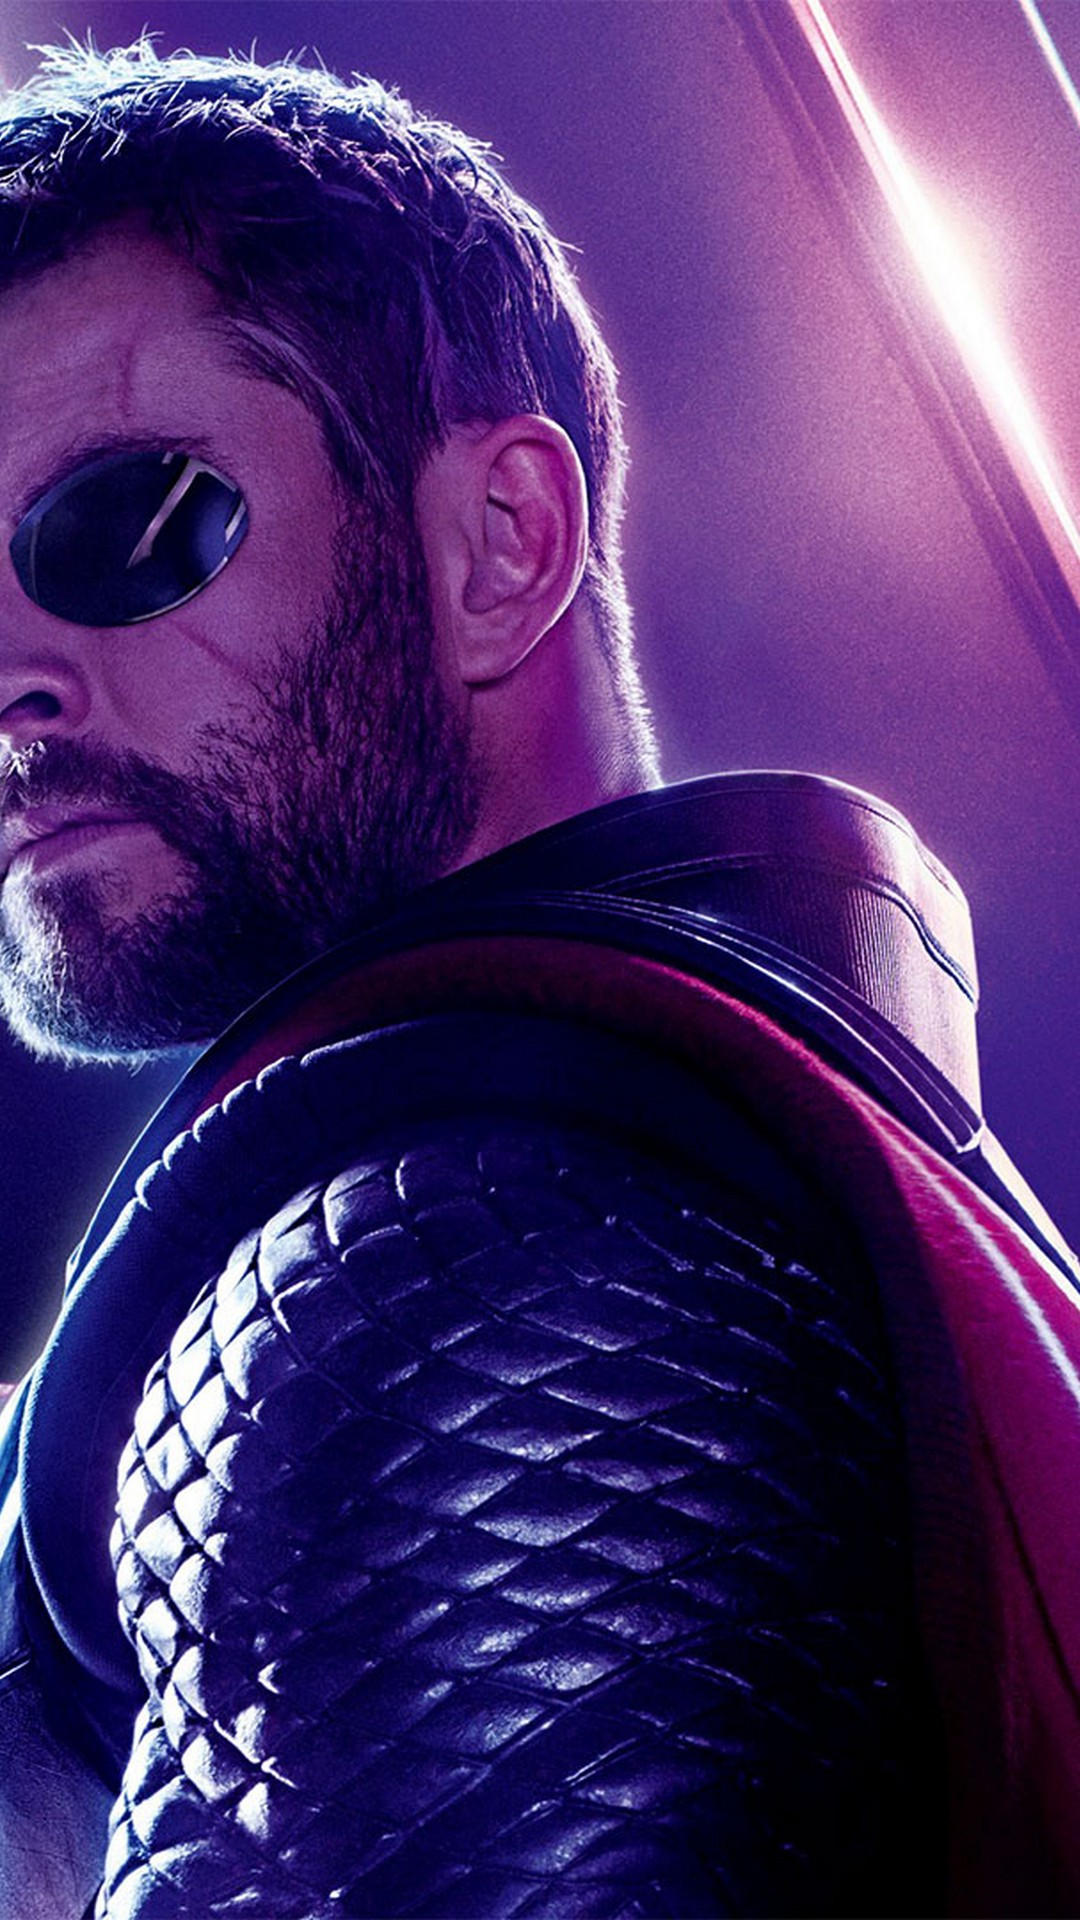 Thor Avengers Endgame iPhone Wallpaper with high-resolution 1080x1920 pixel. You can use this poster wallpaper for your Desktop Computers, Mac Screensavers, Windows Backgrounds, iPhone Wallpapers, Tablet or Android Lock screen and another Mobile device